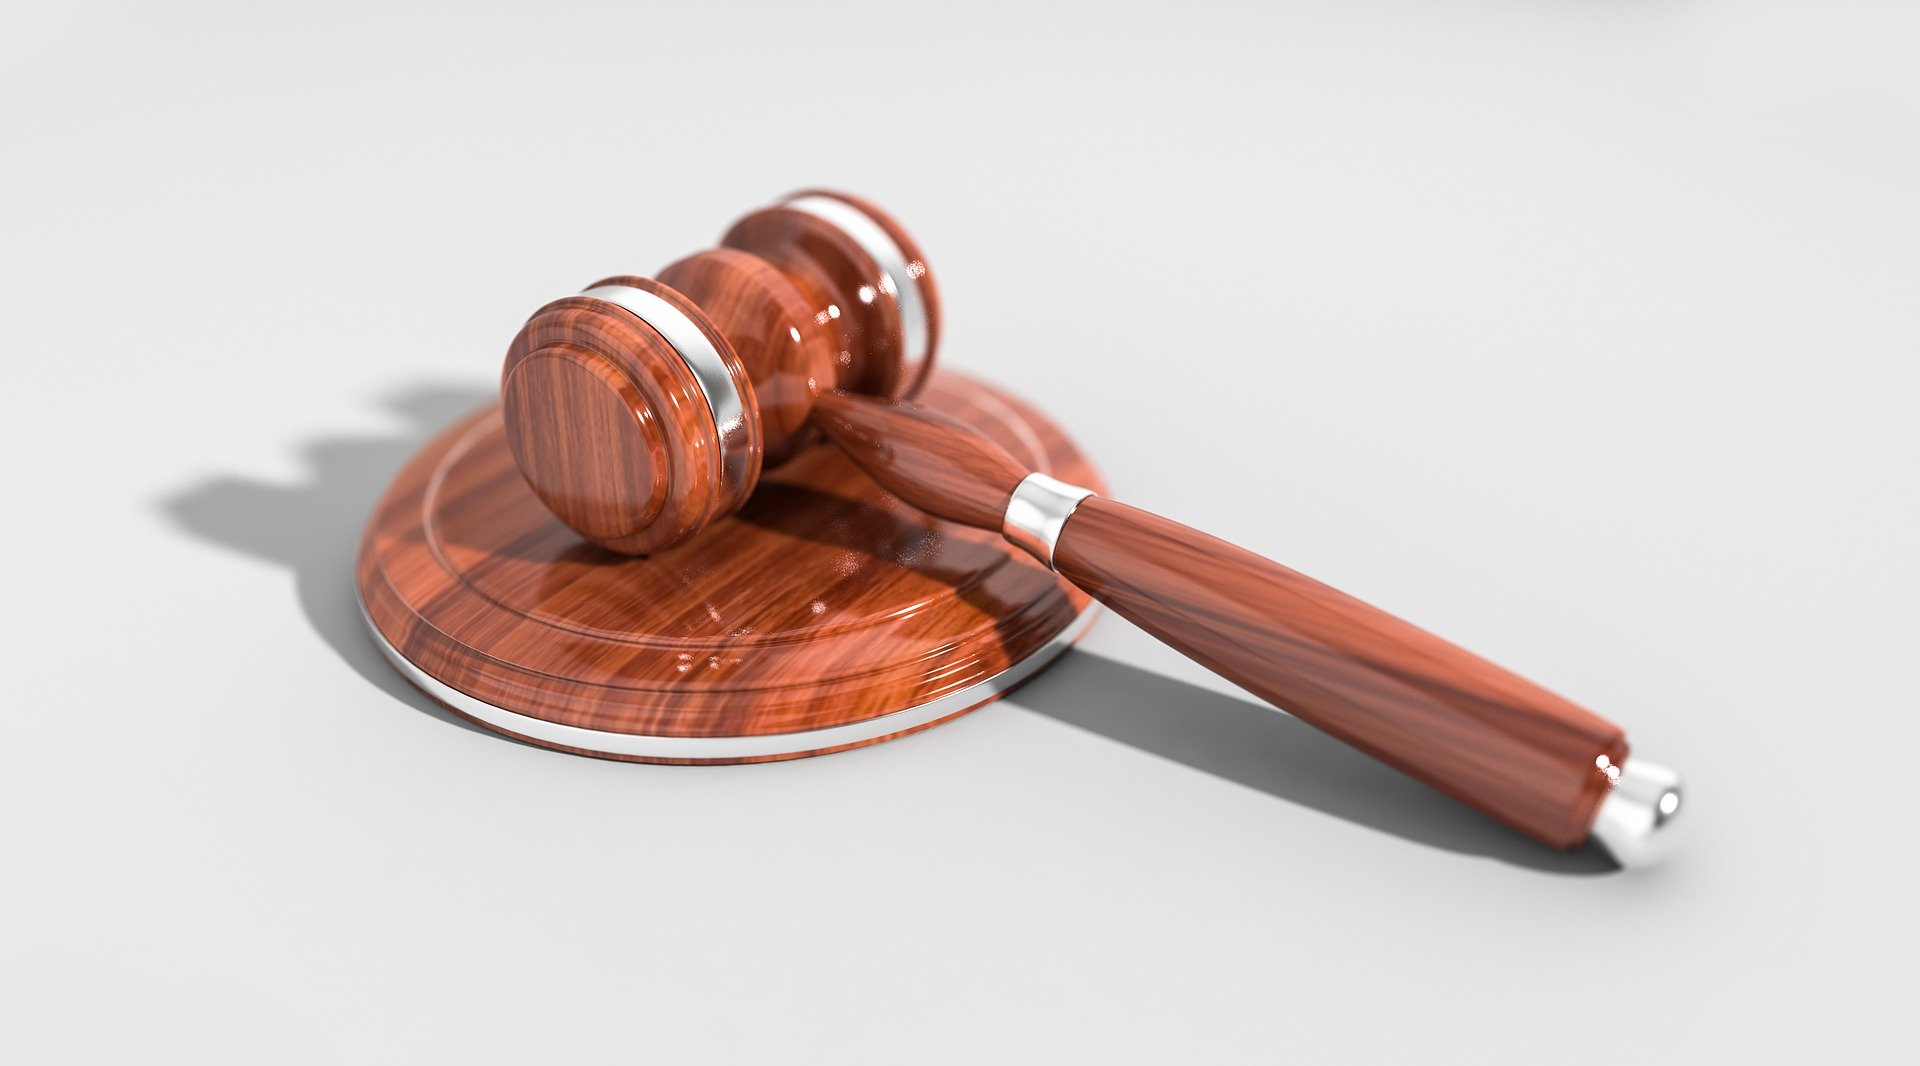 Costly legal action from incomplete Wills